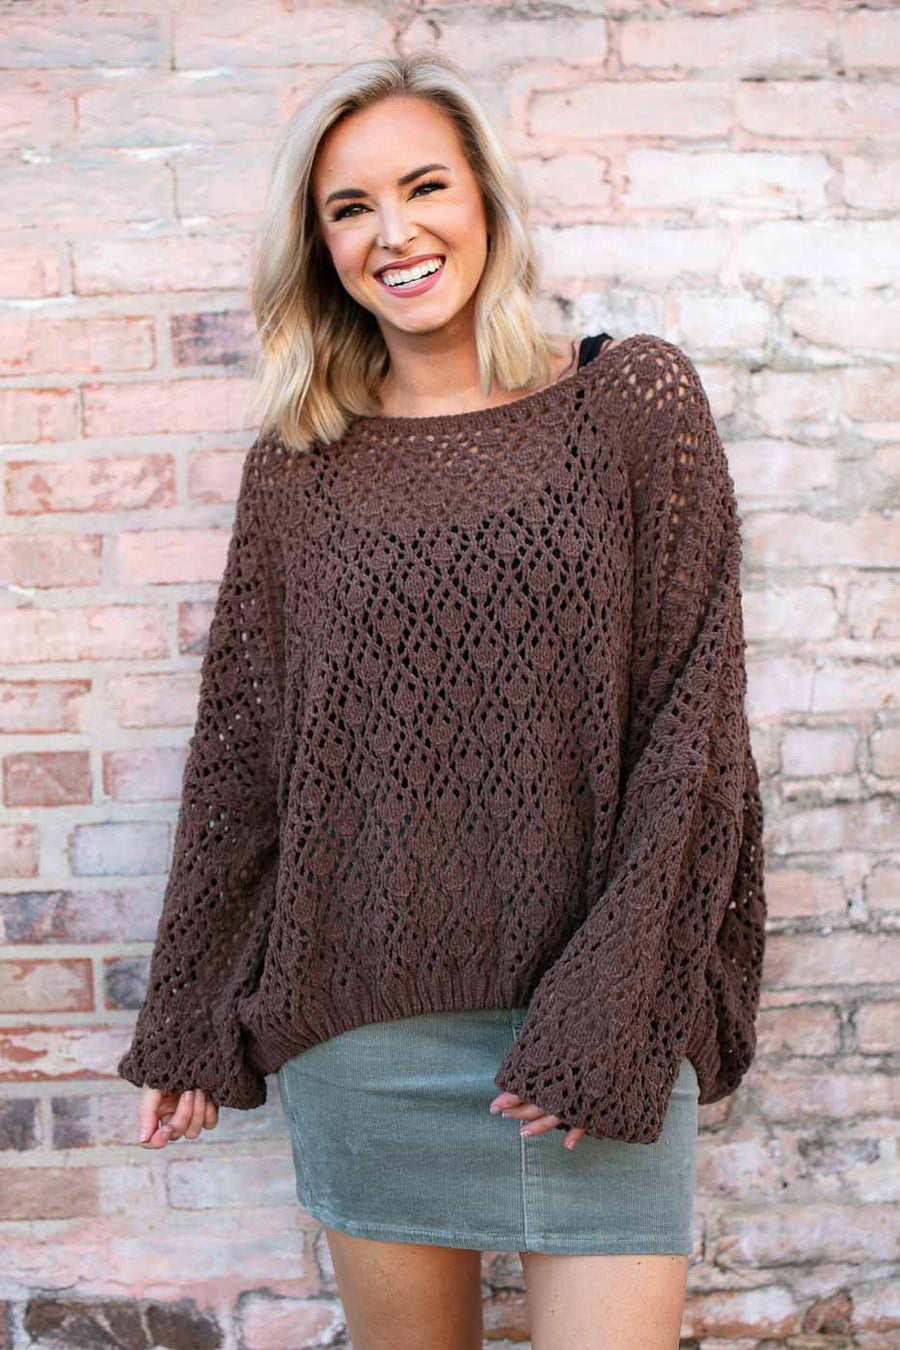 Tops Time for Coffee Brown Open Knit Sweater - Lotus Boutique